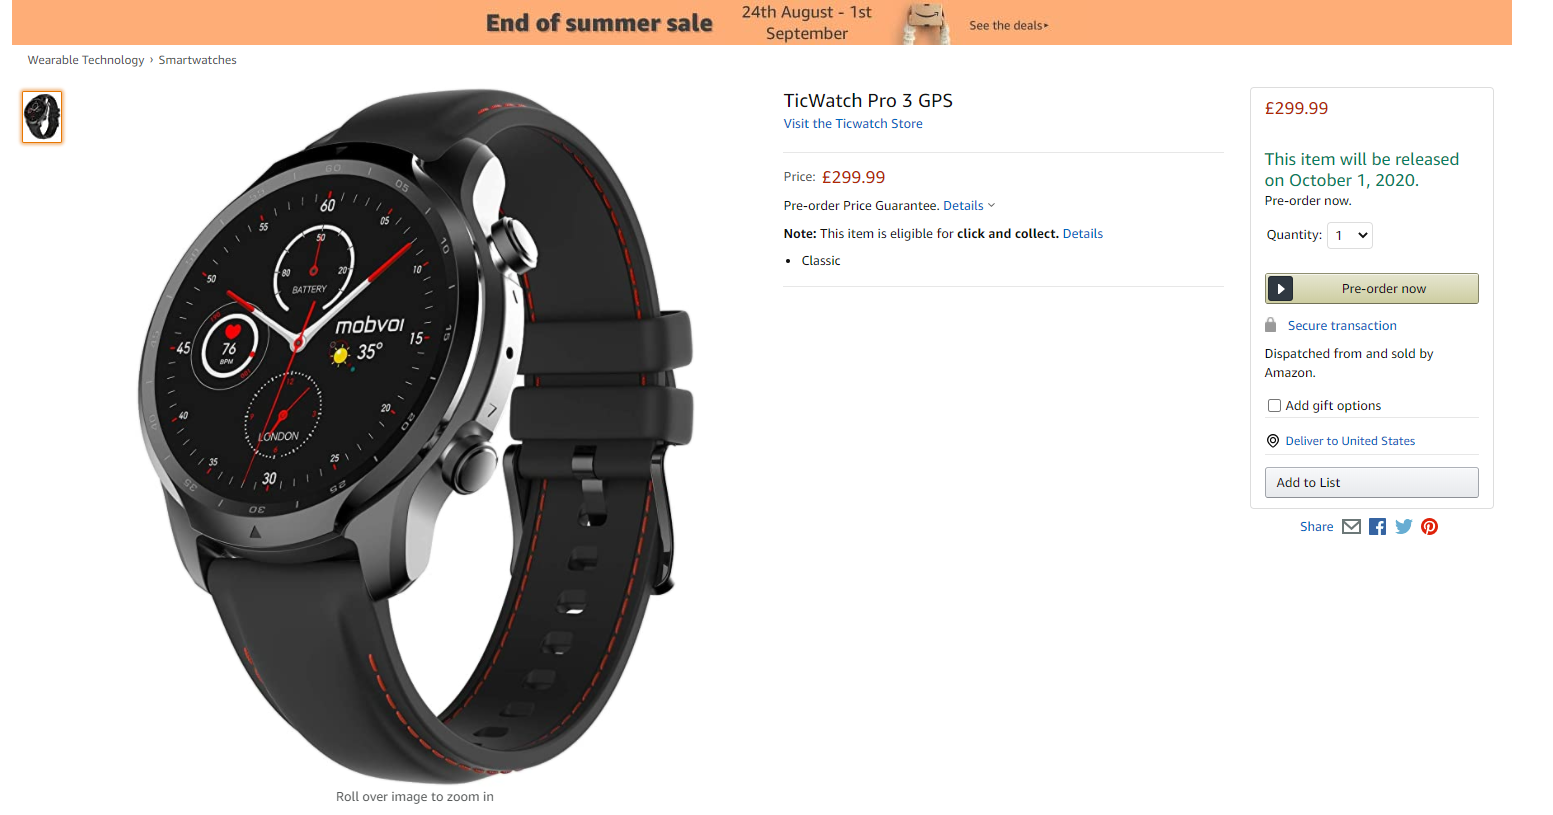 Amazon listing outs upcoming TicWatch Pro 3